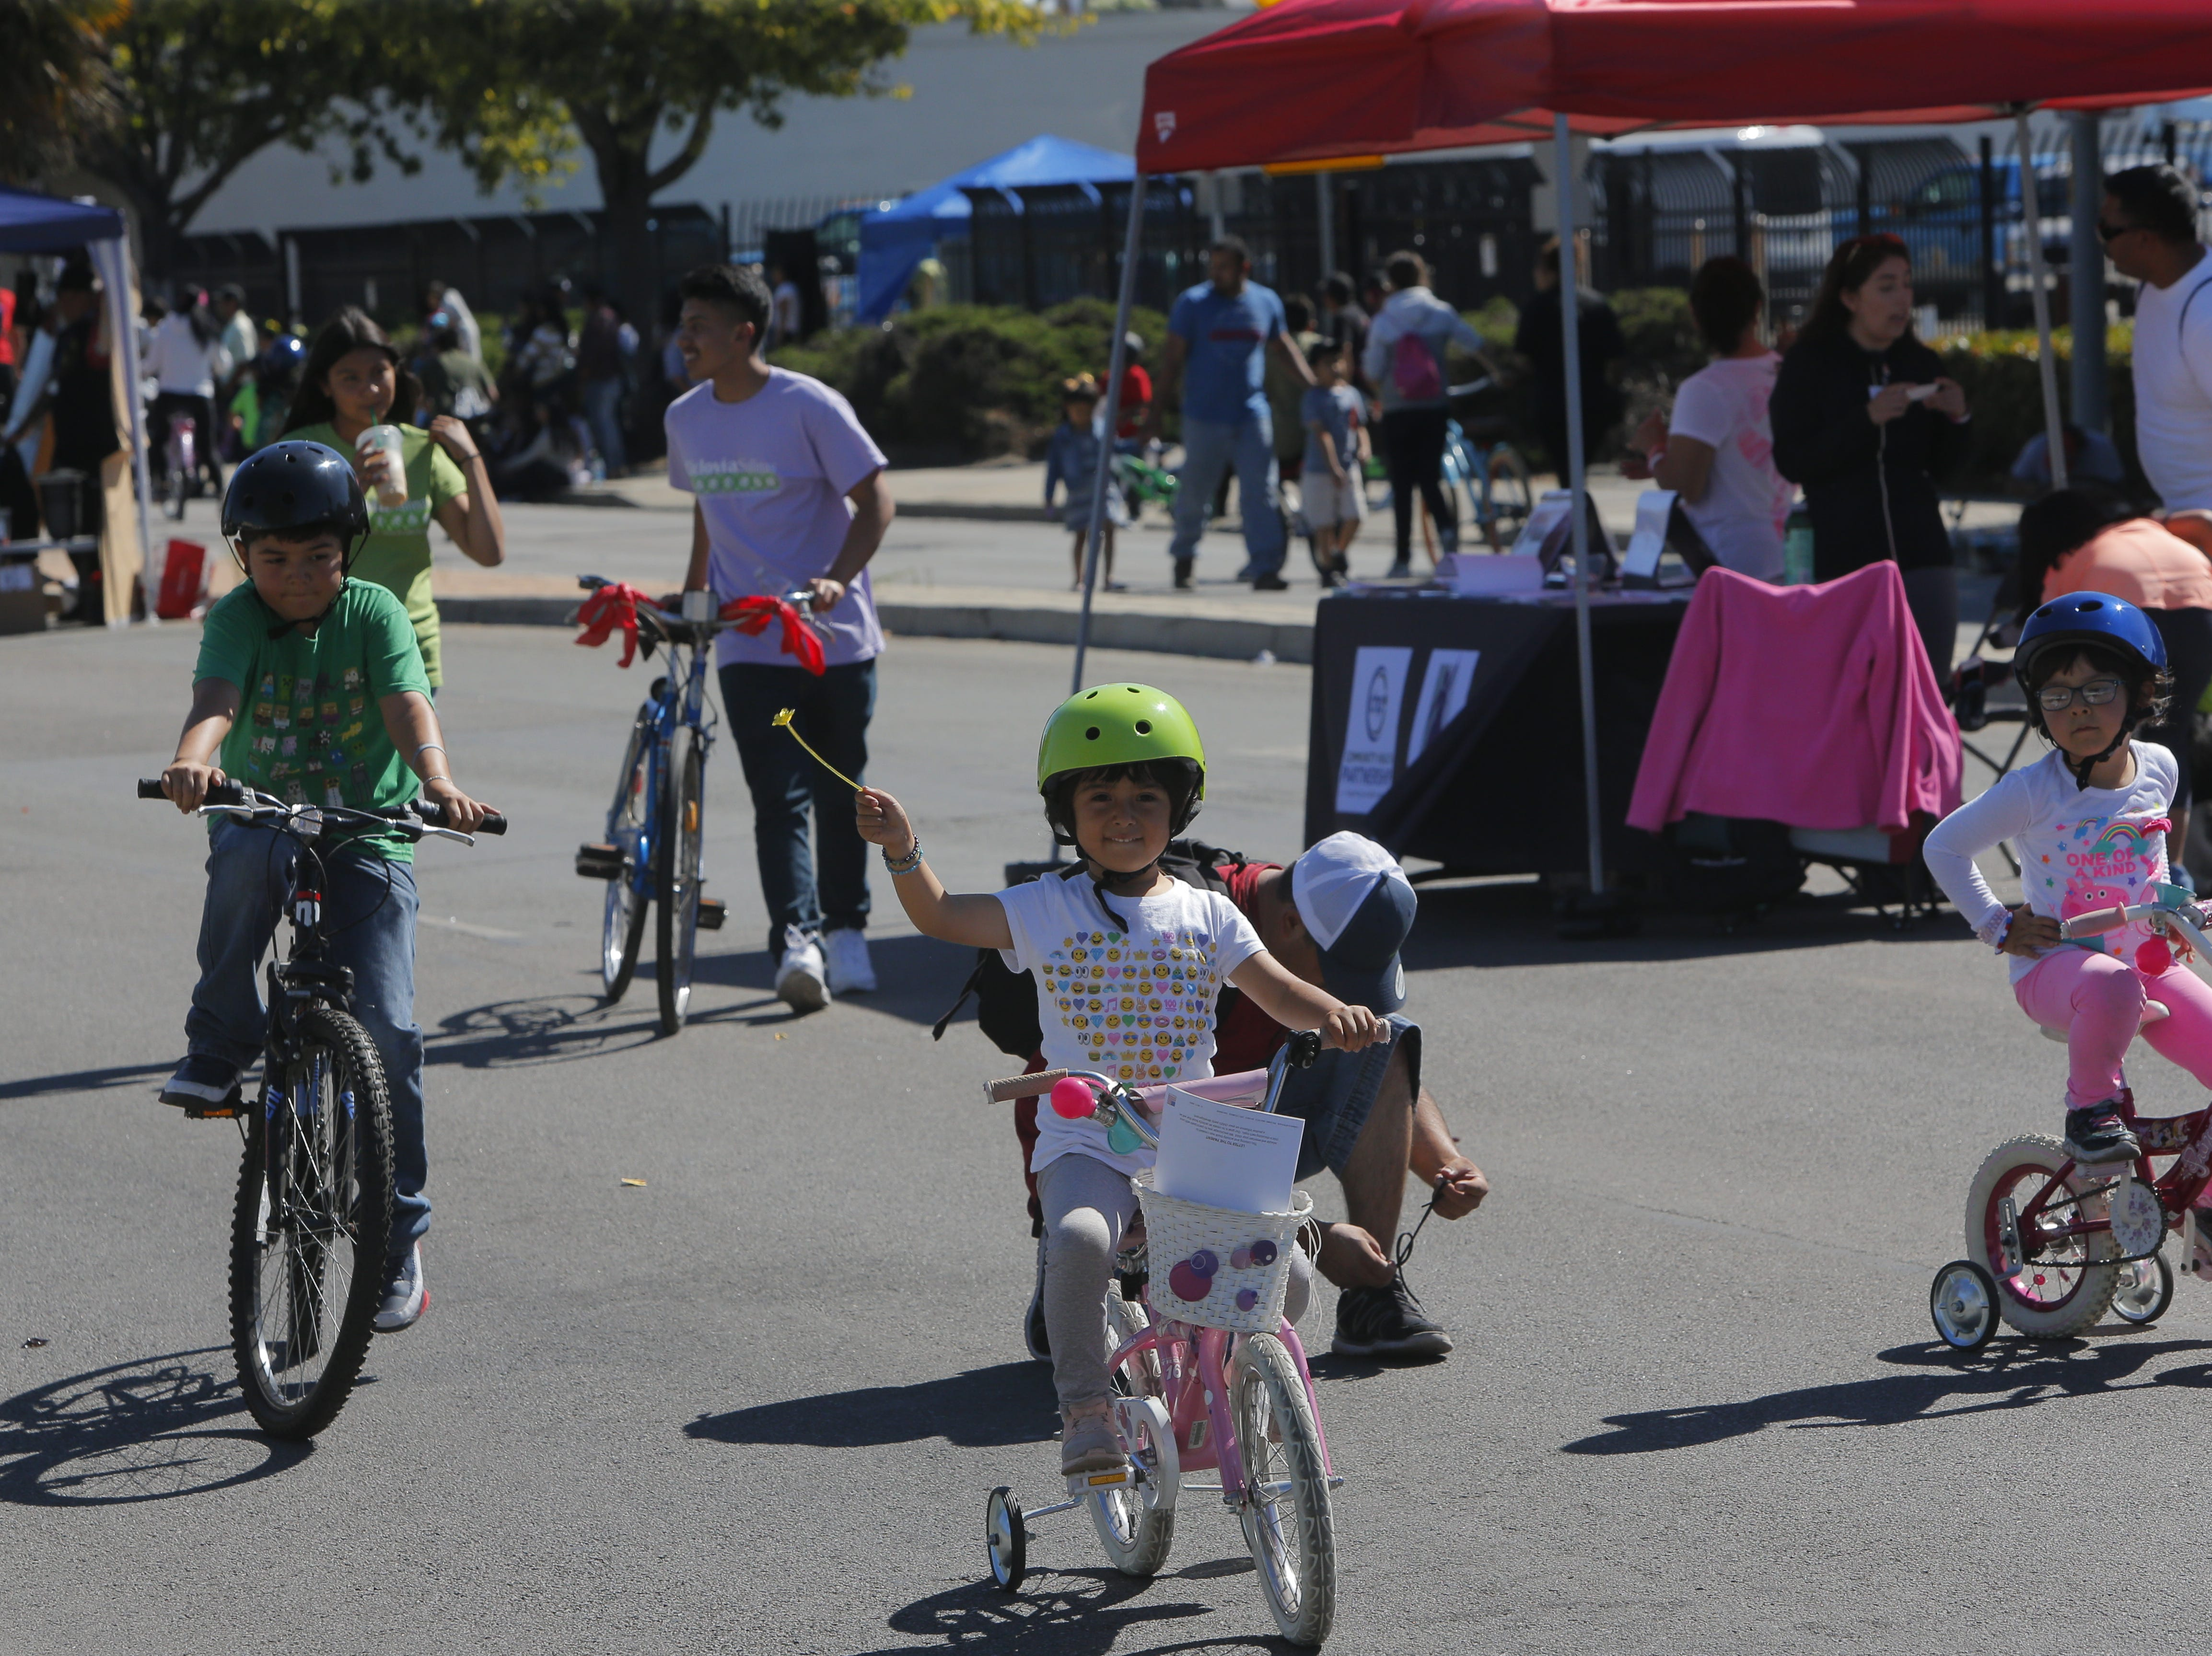 Thousands turned out to pedal, ride and explore 2018's Ciclovia on E. Alisal Street Sunday.